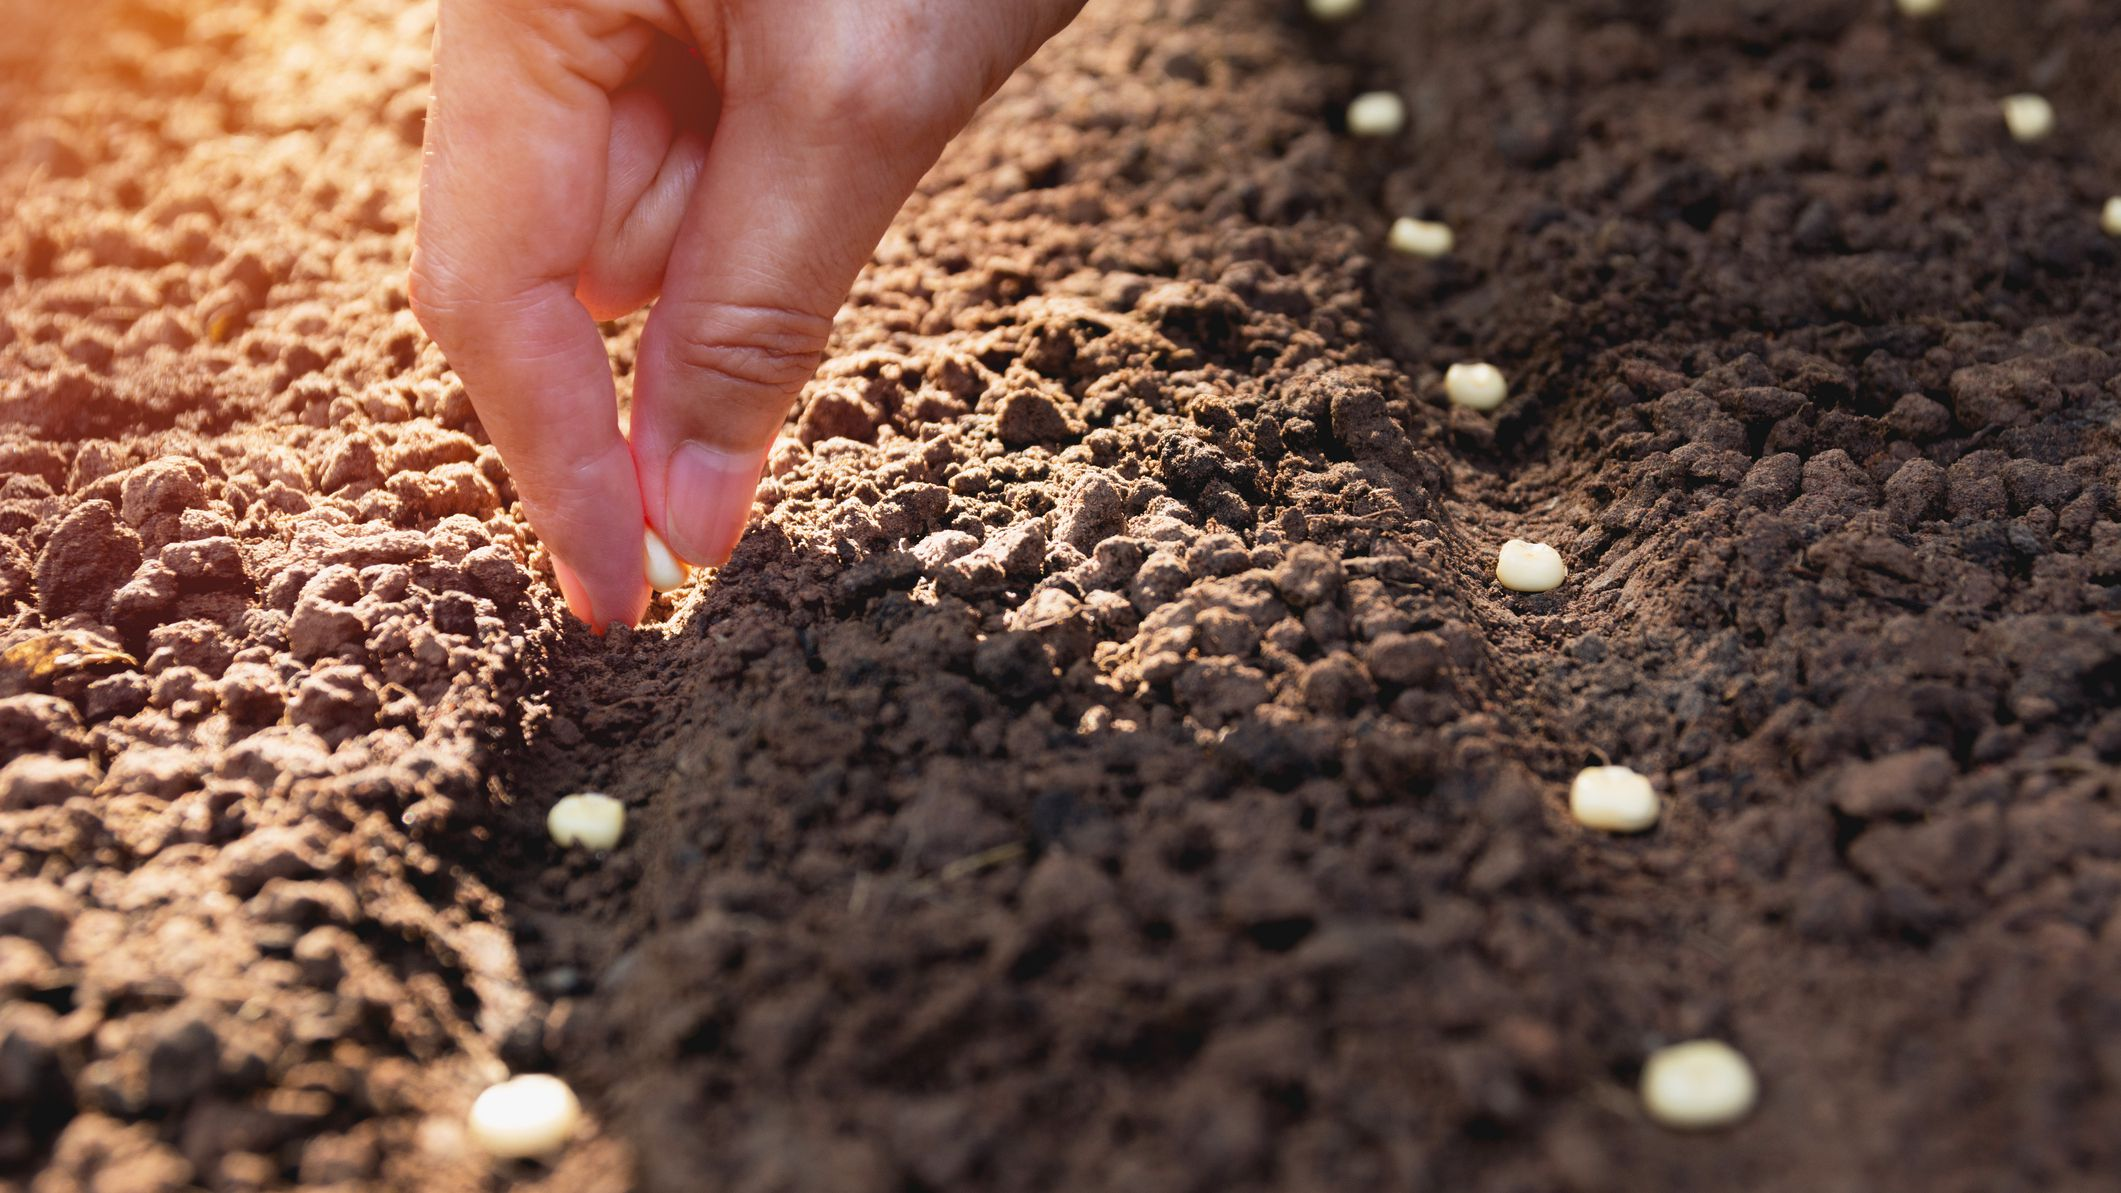 Sowing Seeds Outdoors in the Winter